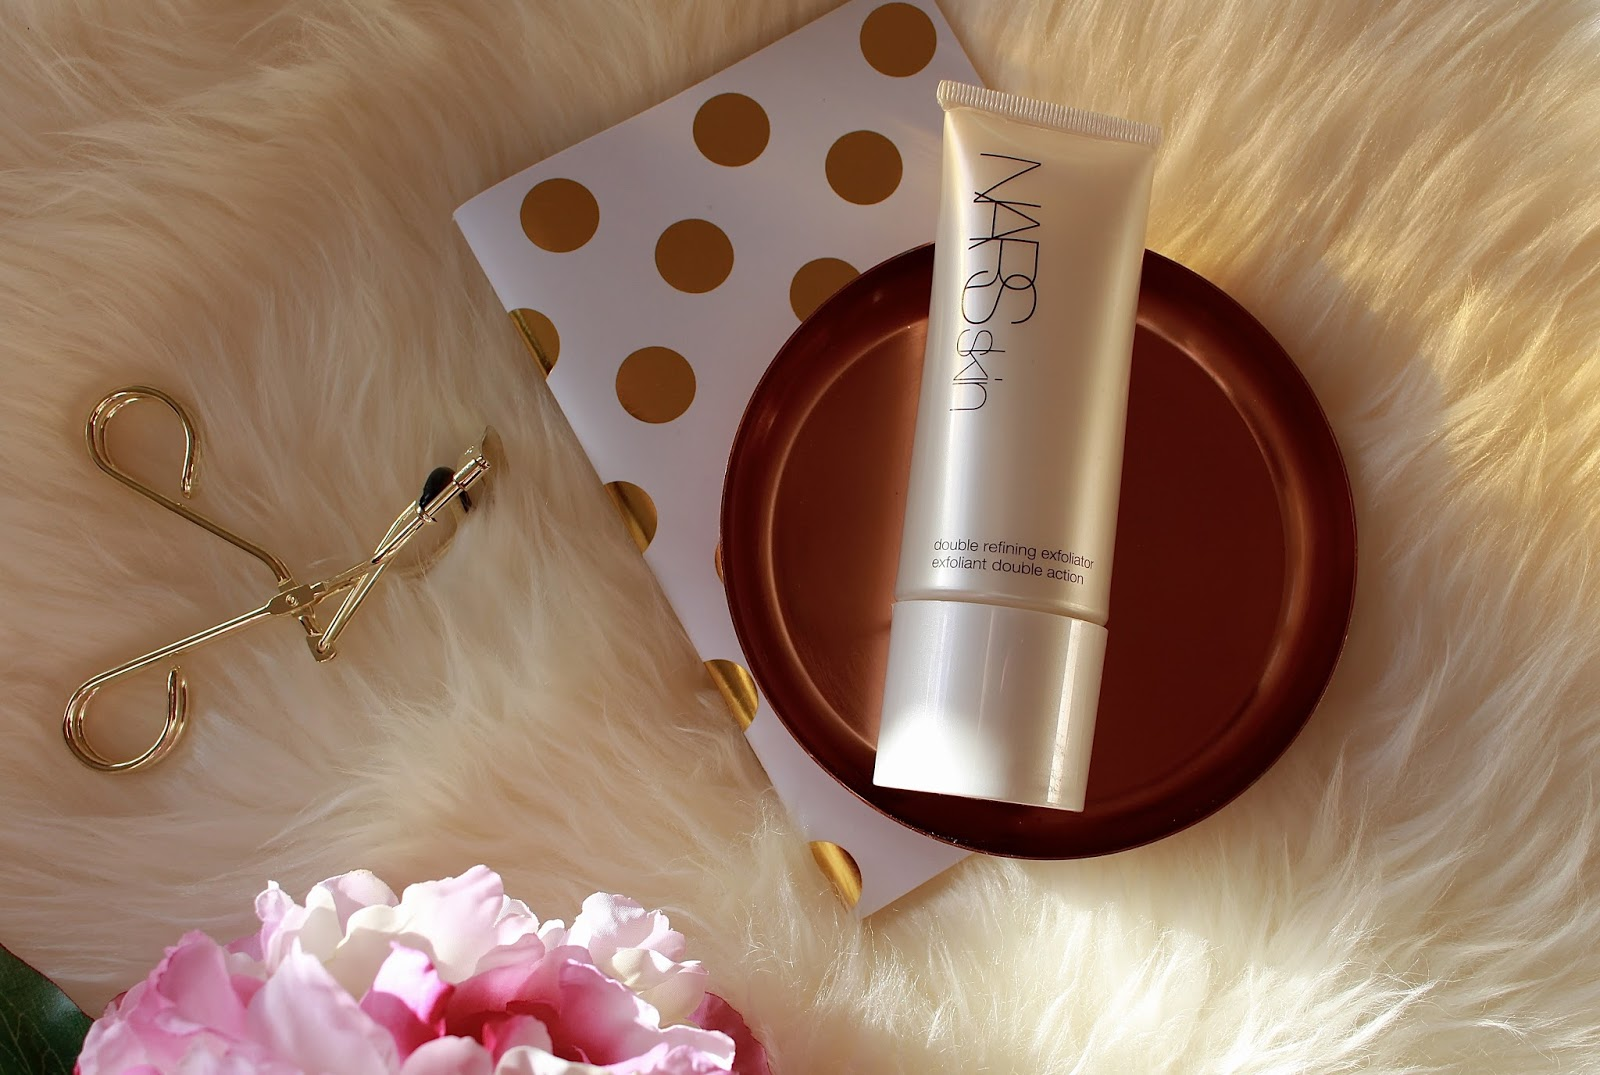 NARS DOUBLE REFINING EXFOLIATOR, Beauty Review, Nars Skincare Review, ASOS Beauty